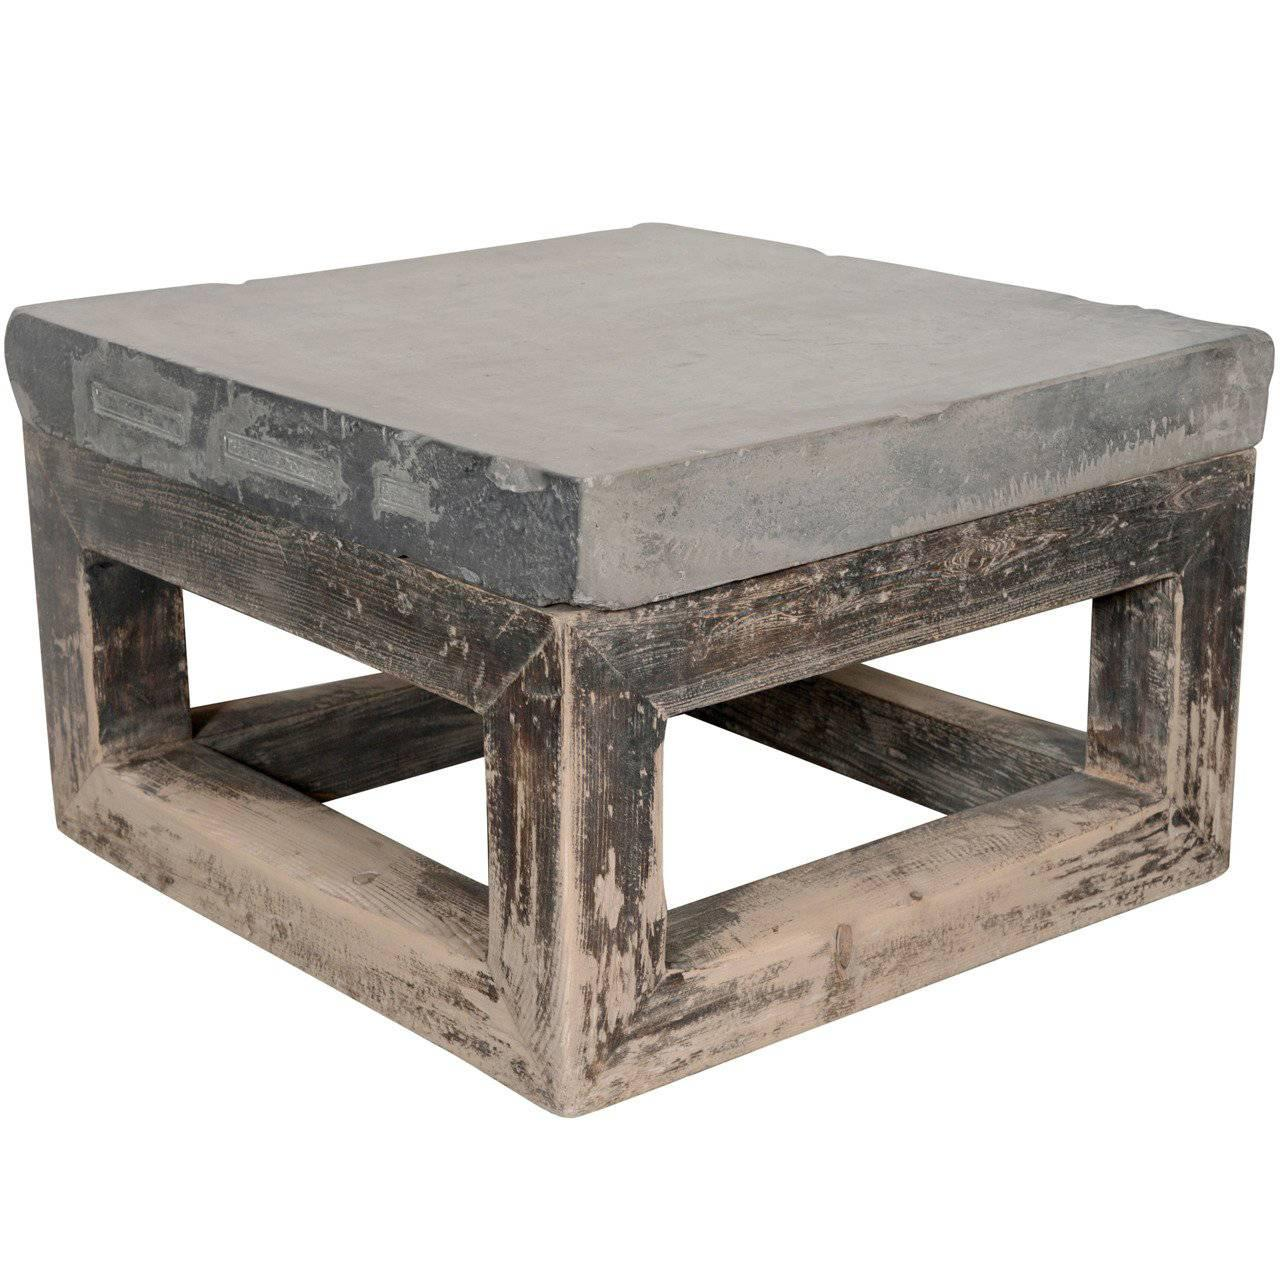 Merveilleux Wabi Sabi Appeal Blue Stone Top End Table For Sale